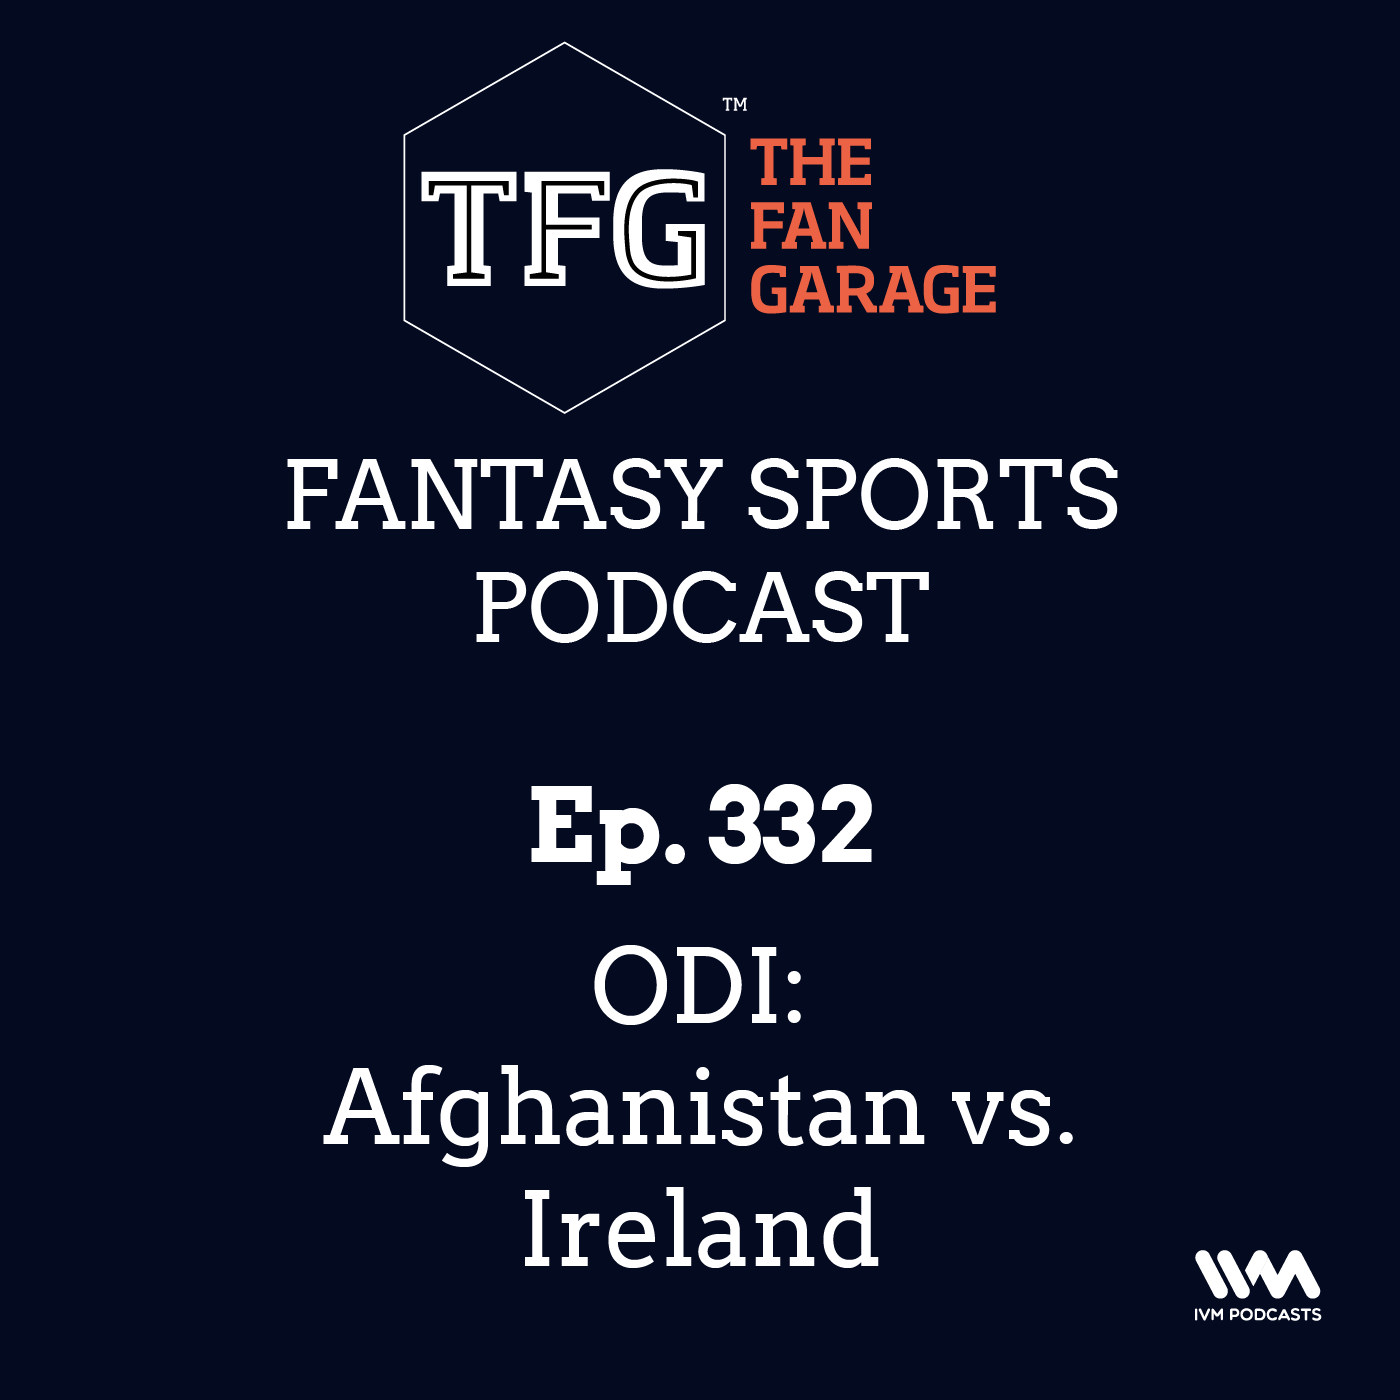 TFG Fantasy Sports Podcast Ep. 332: ODI: Afghanistan vs. Ireland